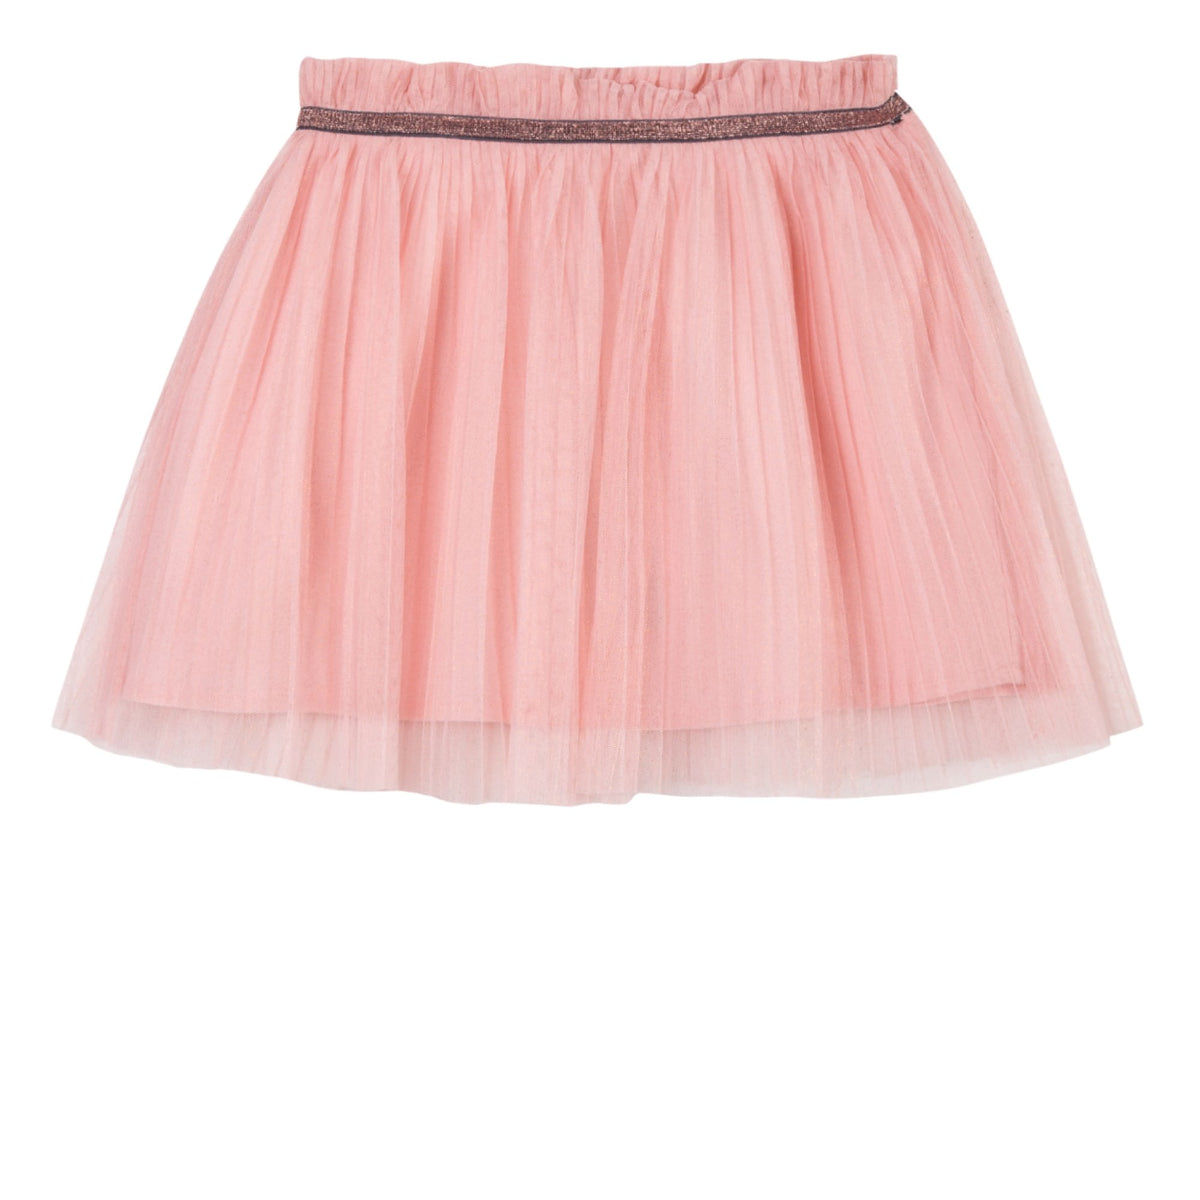 Girls Pink Petticoat Skirt With Tule